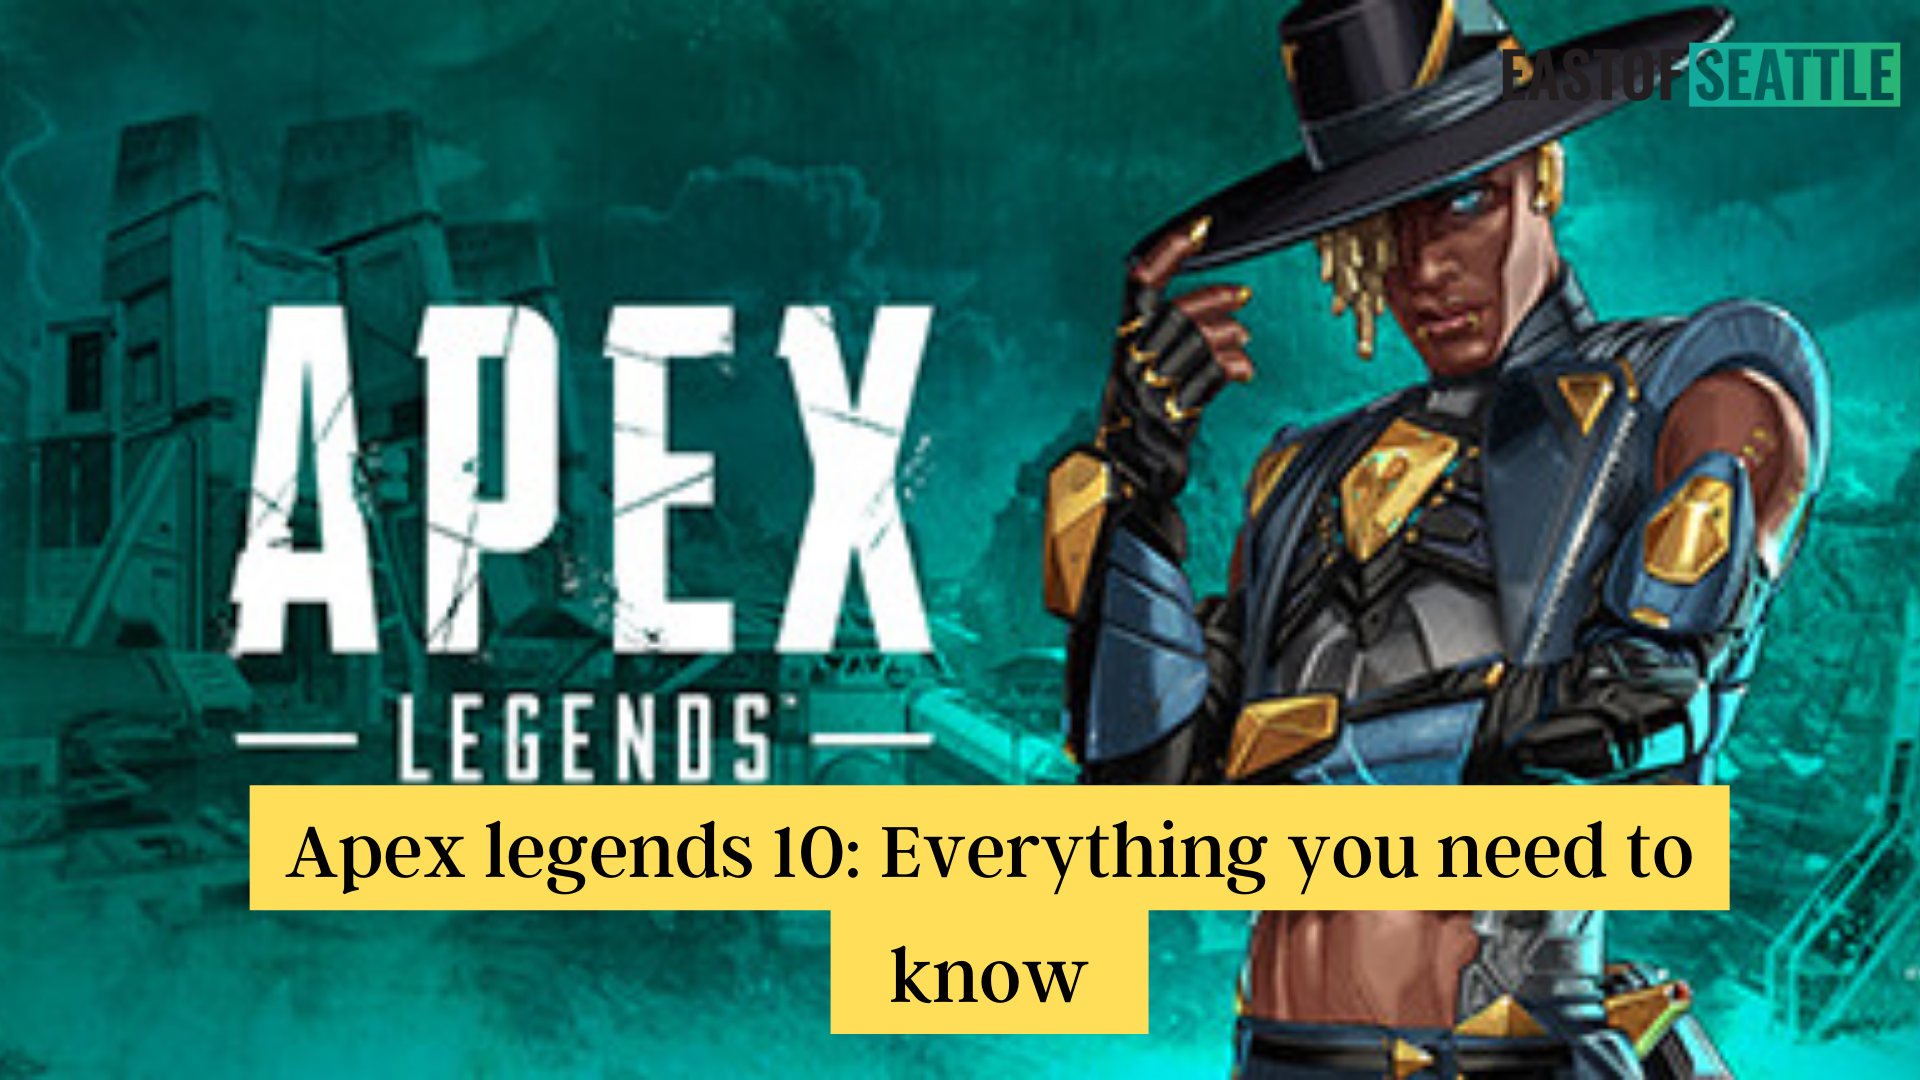 Apex legends 10 Everything you need to know